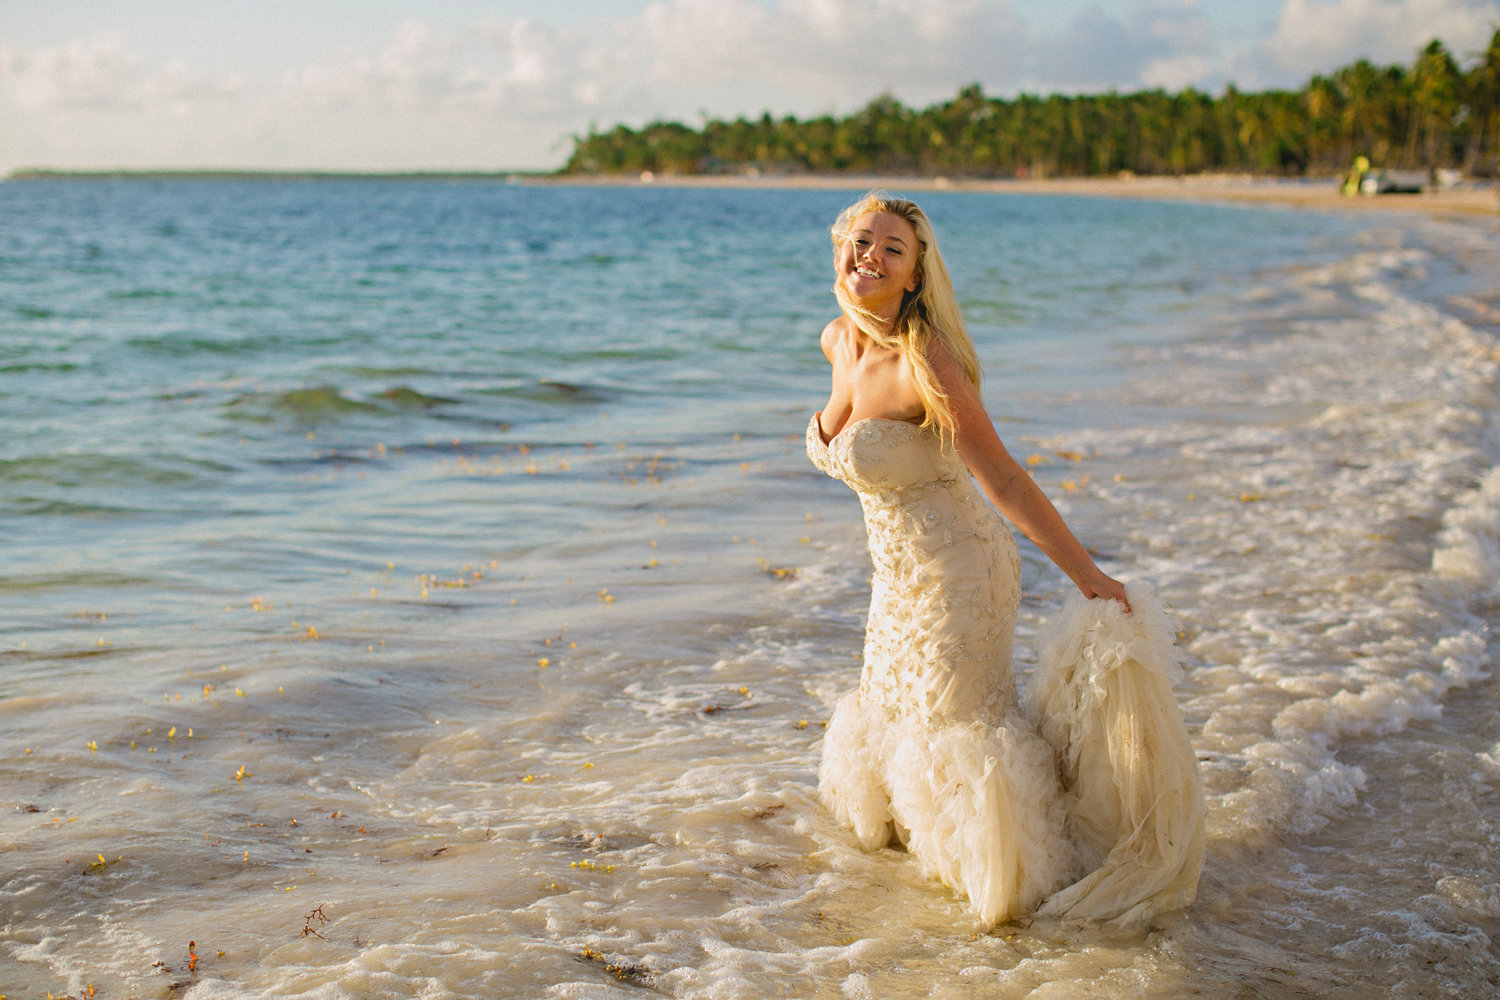 punta_cana_canada_intimate_wedding_dress_photographer_katya_nova_054